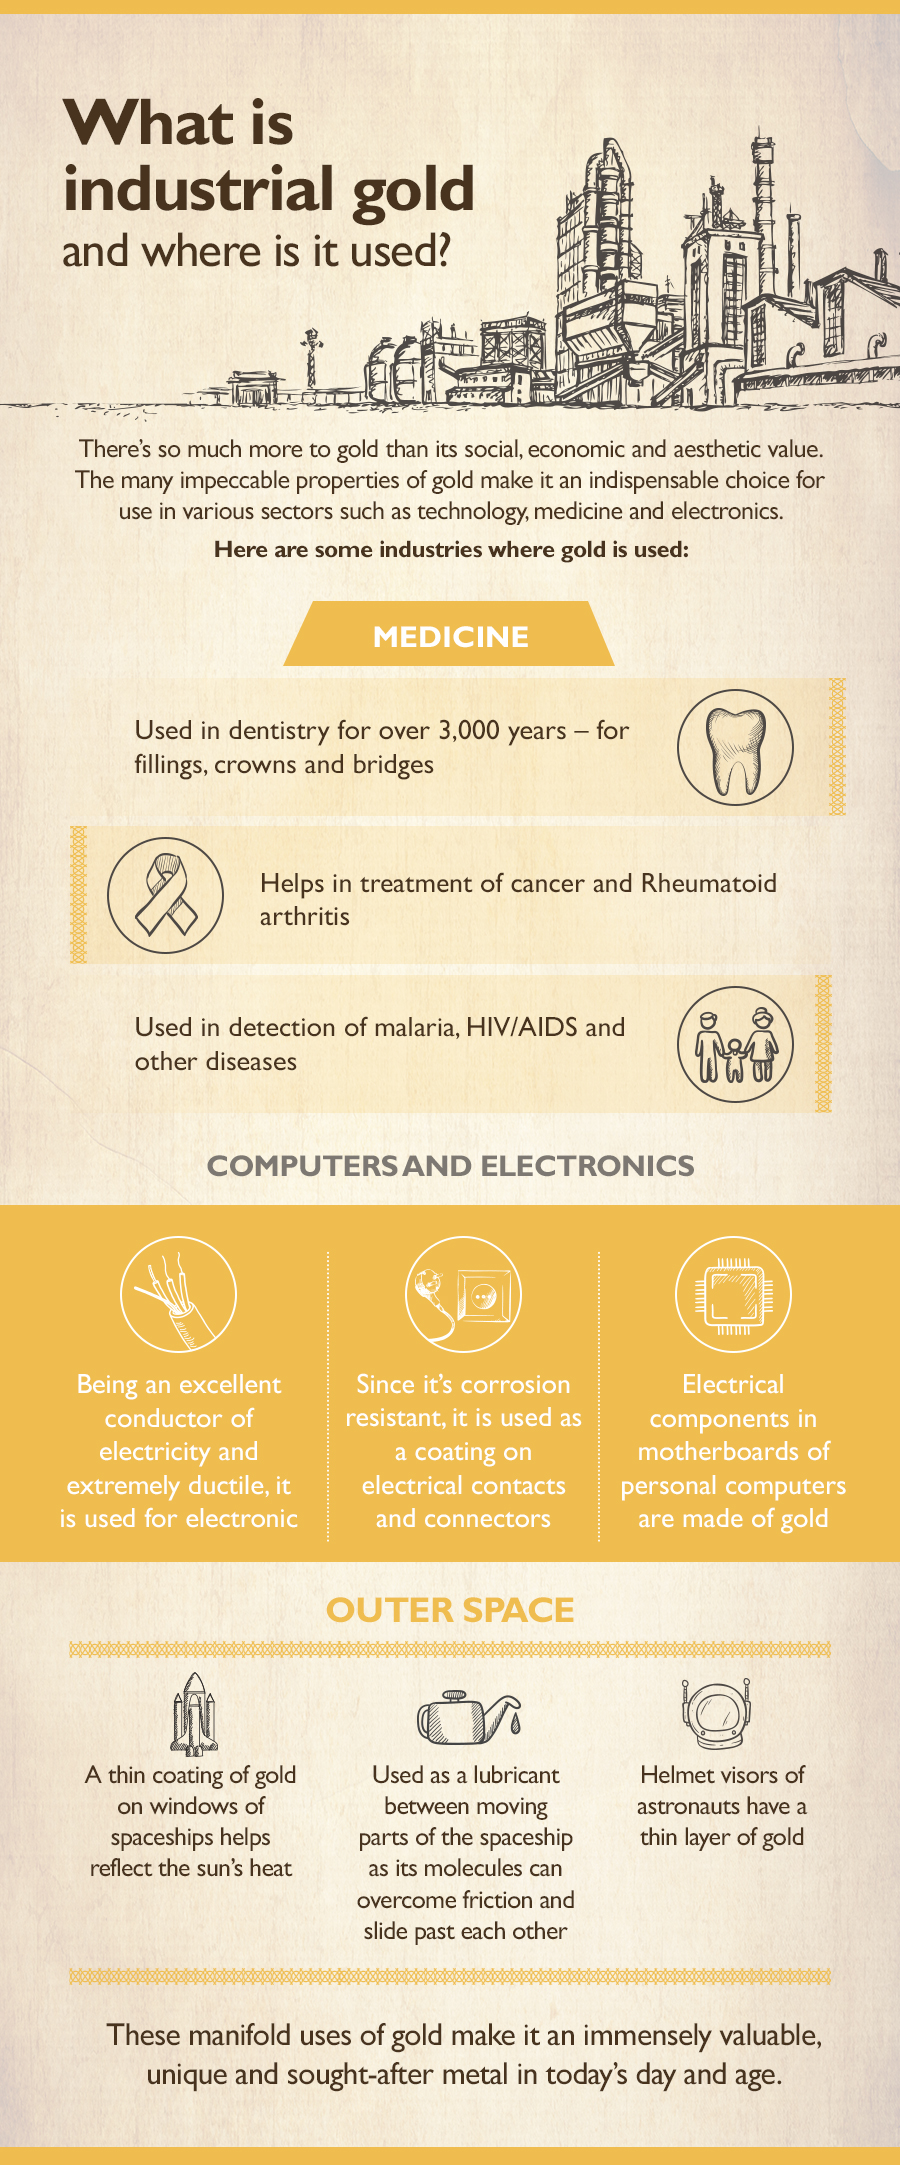 Gold has a number of industrial uses from radiation shielding on satellites to its value as a conductor of electricity in majority of the electronic devices